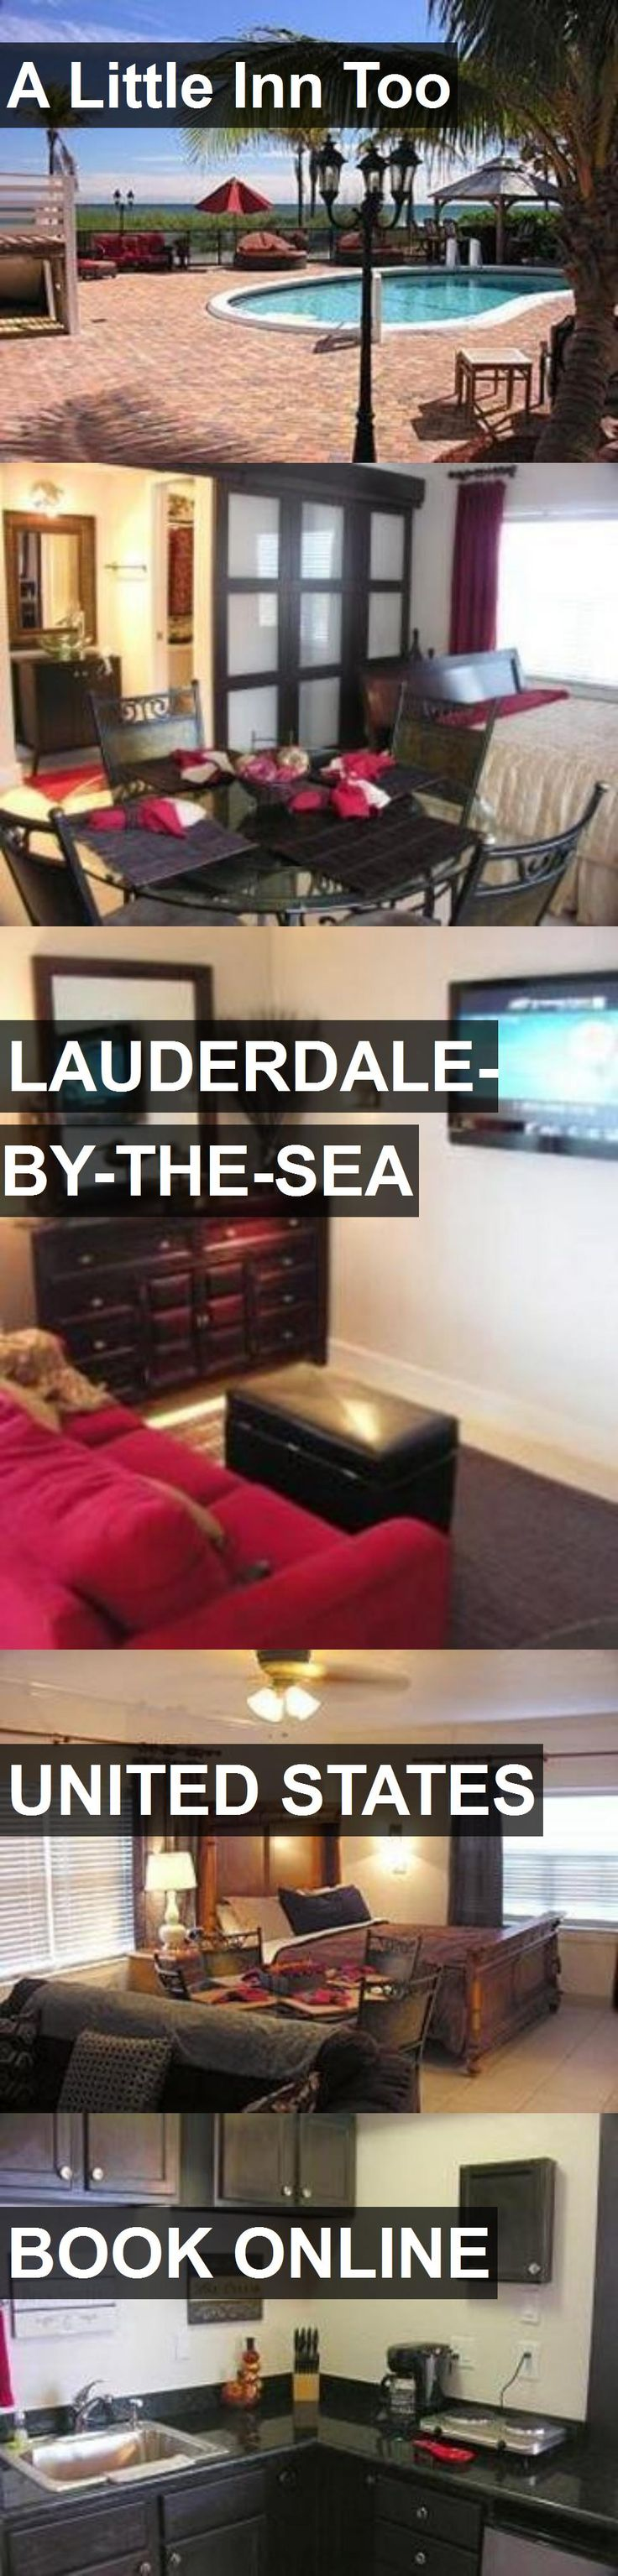 Hotel A Little Inn Too in Lauderdale-By-The-Sea, United States. For more information, photos, reviews and best prices please follow the link. #UnitedStates #Lauderdale-By-The-Sea #ALittleInnToo #hotel #travel #vacation